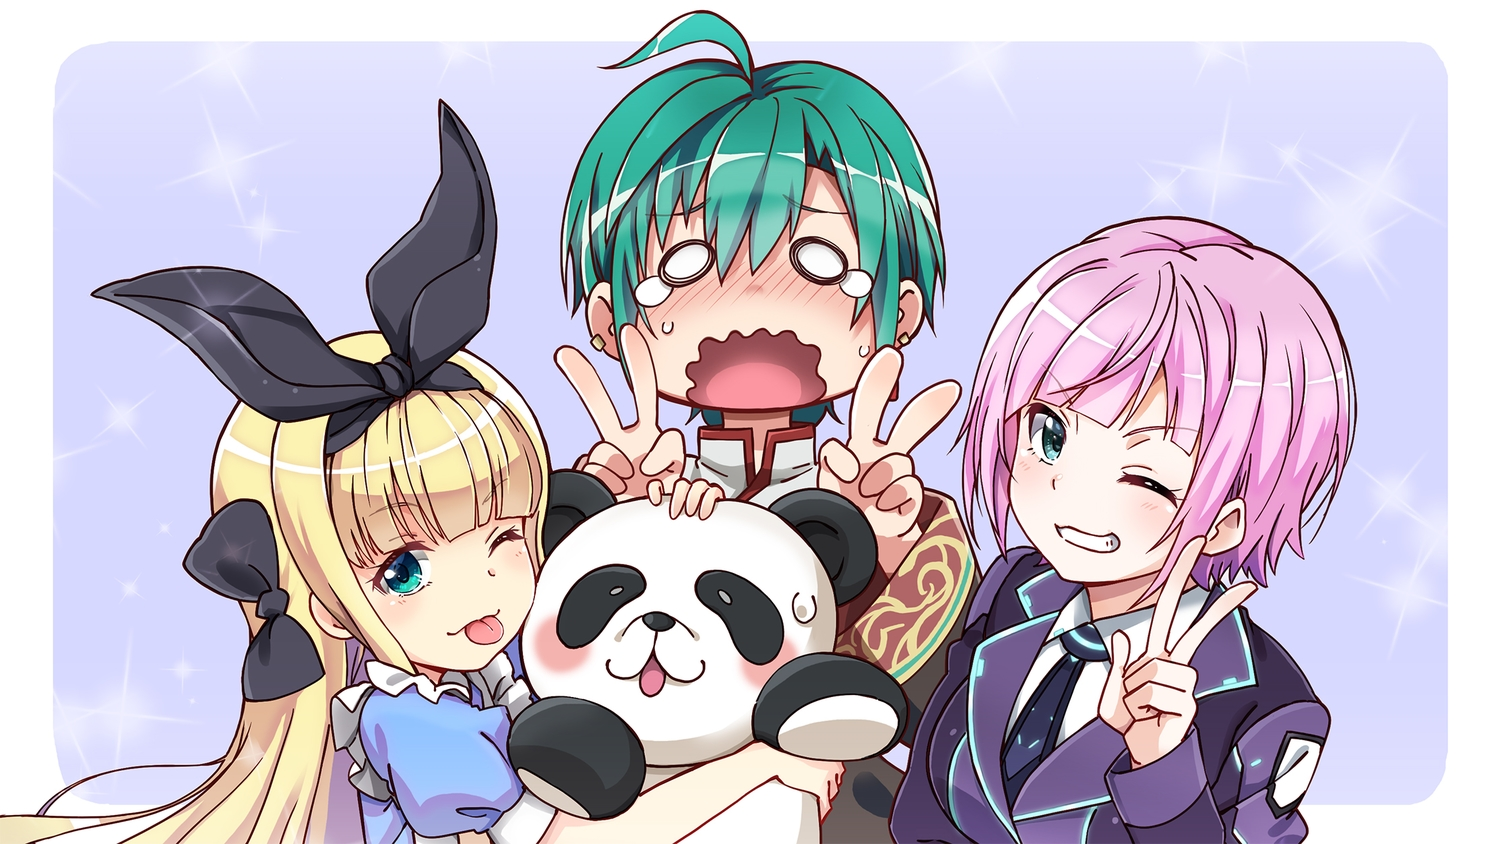 animal bear blonde_hair blush bow chinese_clothes fujita_758634 green_eyes green_hair headband hug long_hair mononobe_alice nijisanji panda purple_hair ryuushen short_hair suit tears tie wink yuuhi_riri